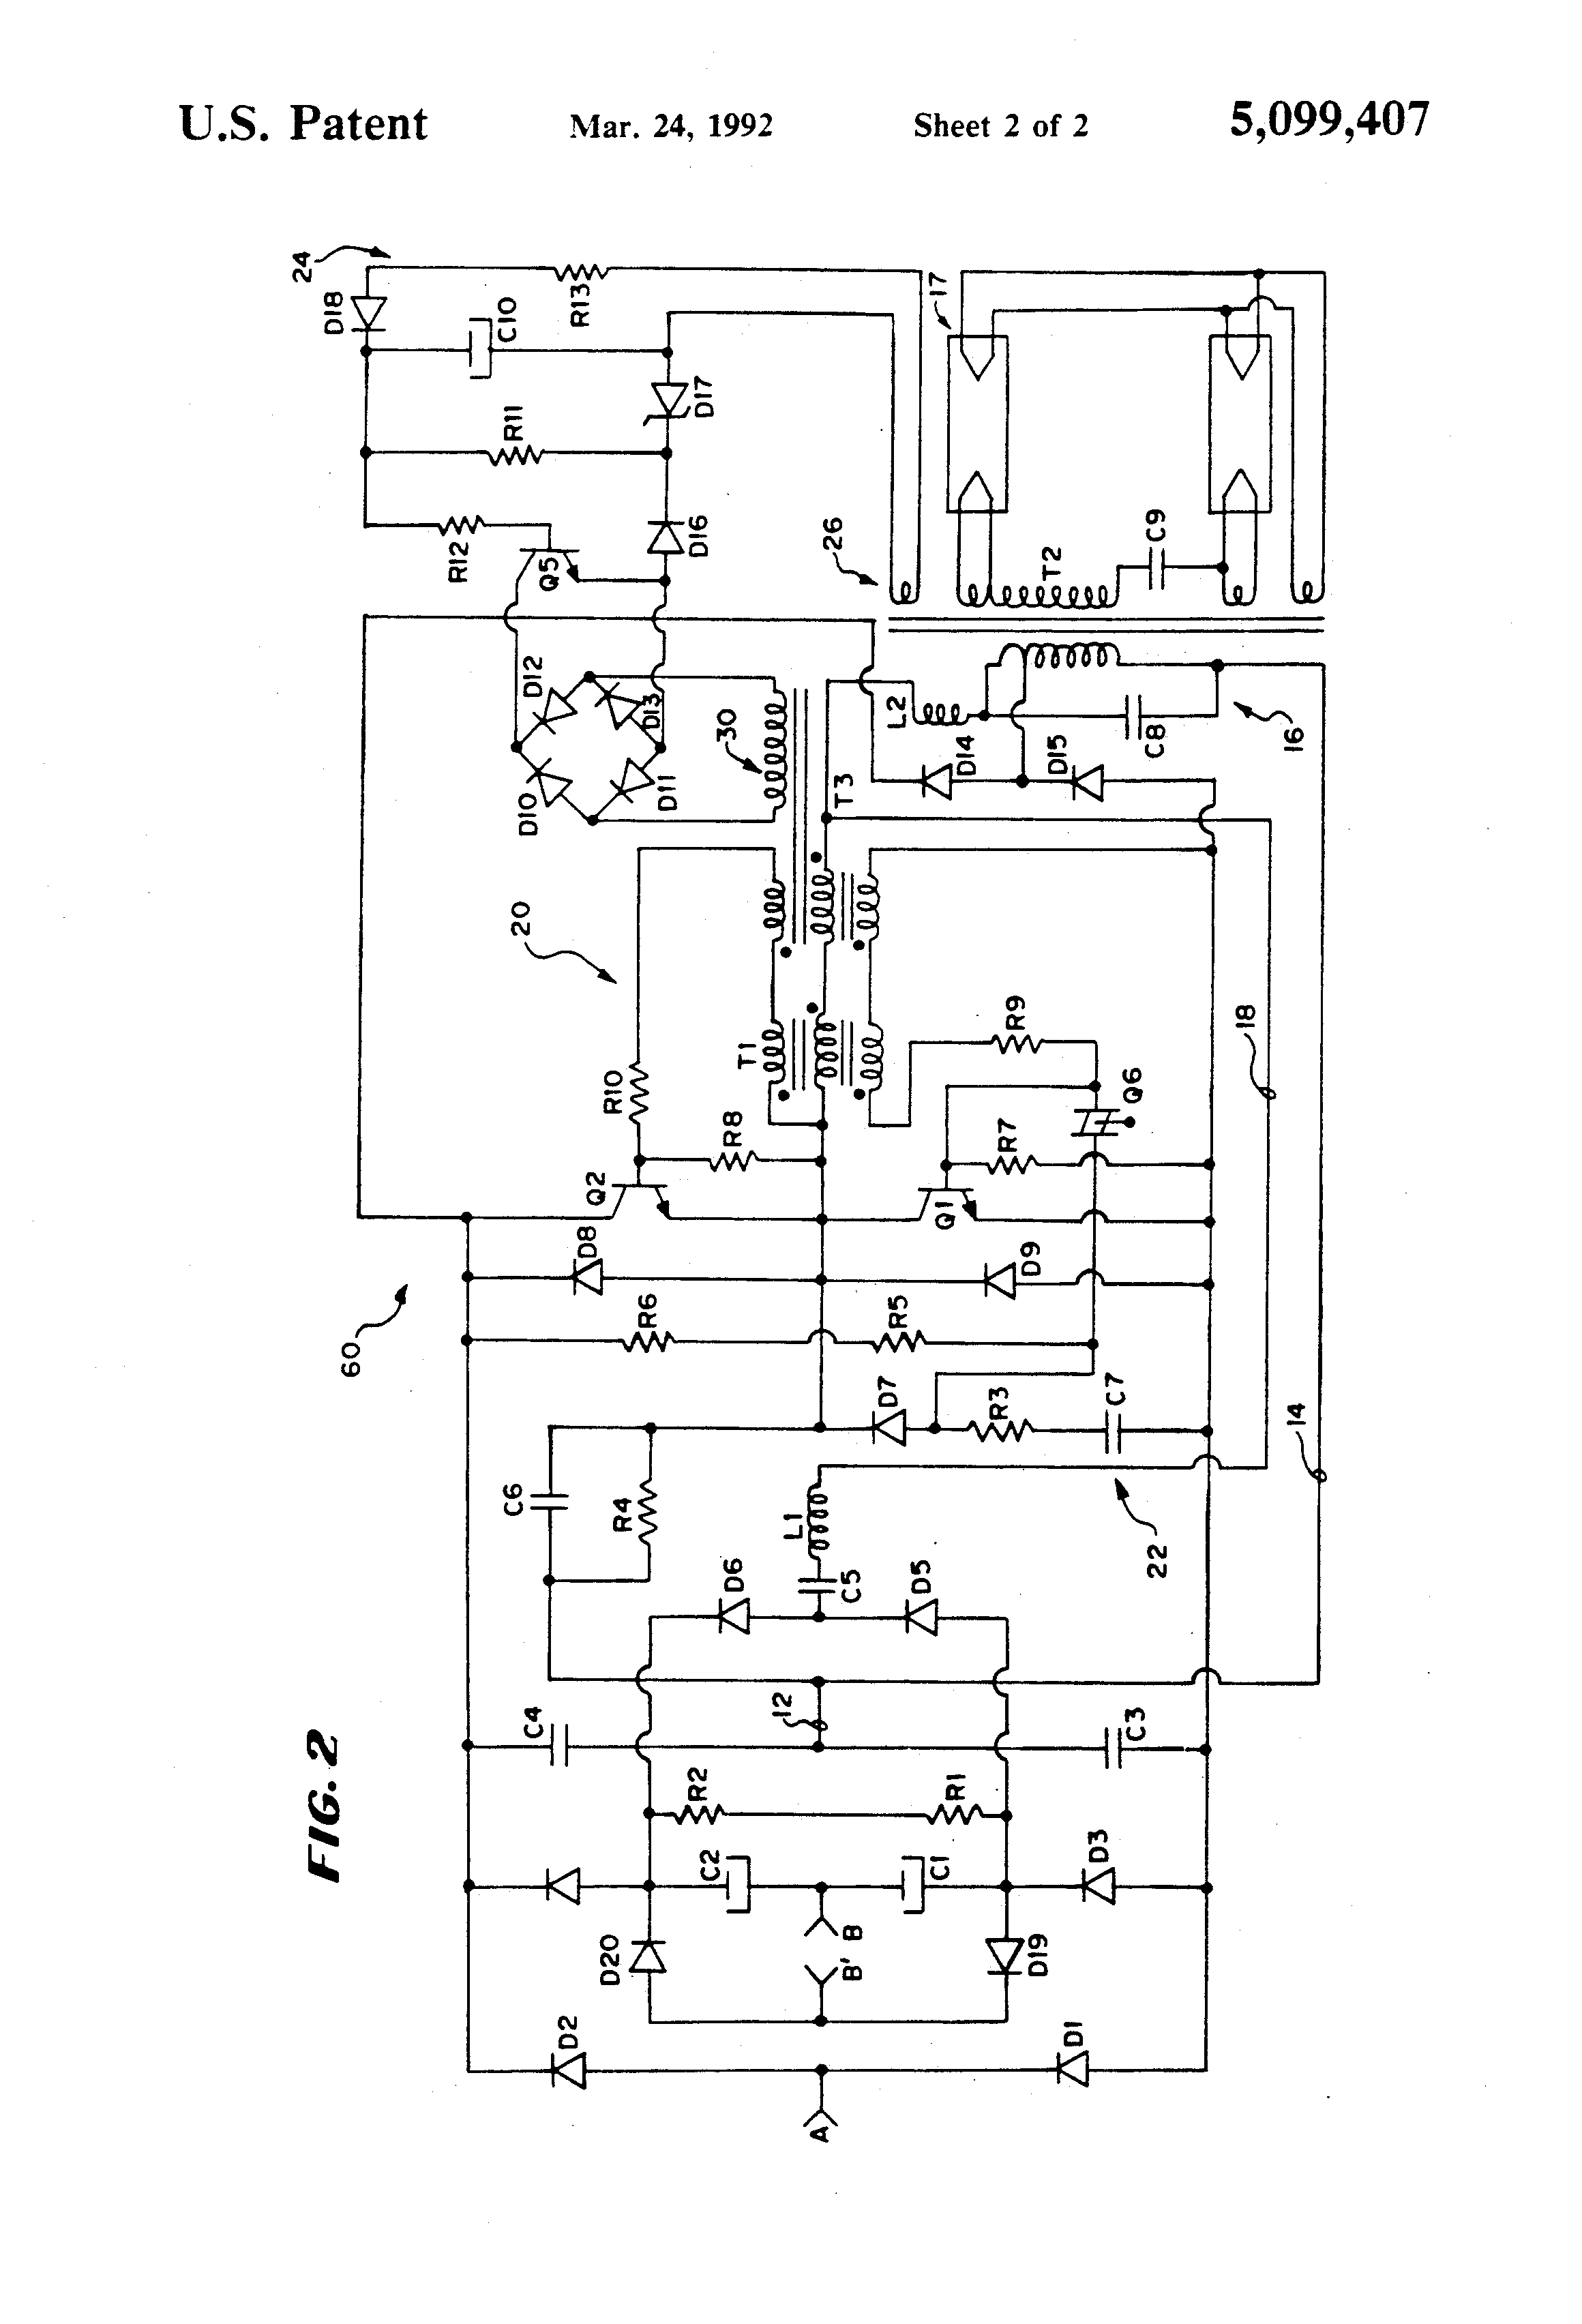 Patent Us5099407 Inverter With Power Factor Correction Circuit 40w Fluorescent Lamp Diagram Drawing